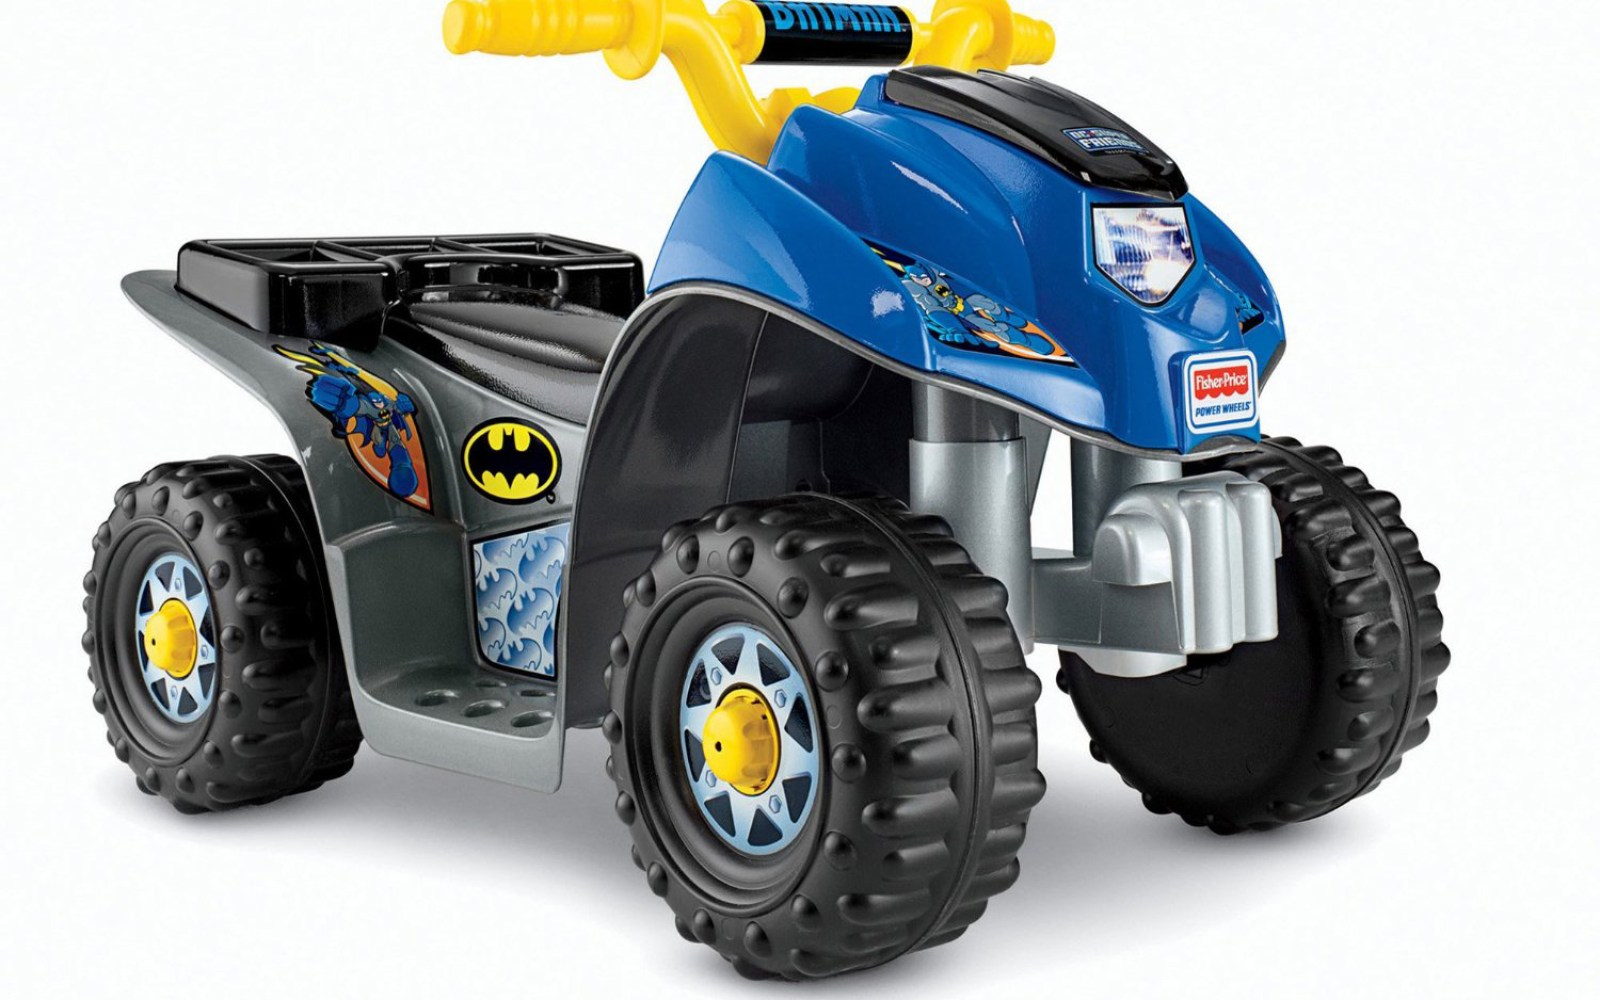 Toys & Games for kids: Save on Matchbox, Barbie, Lego, Nerf, more